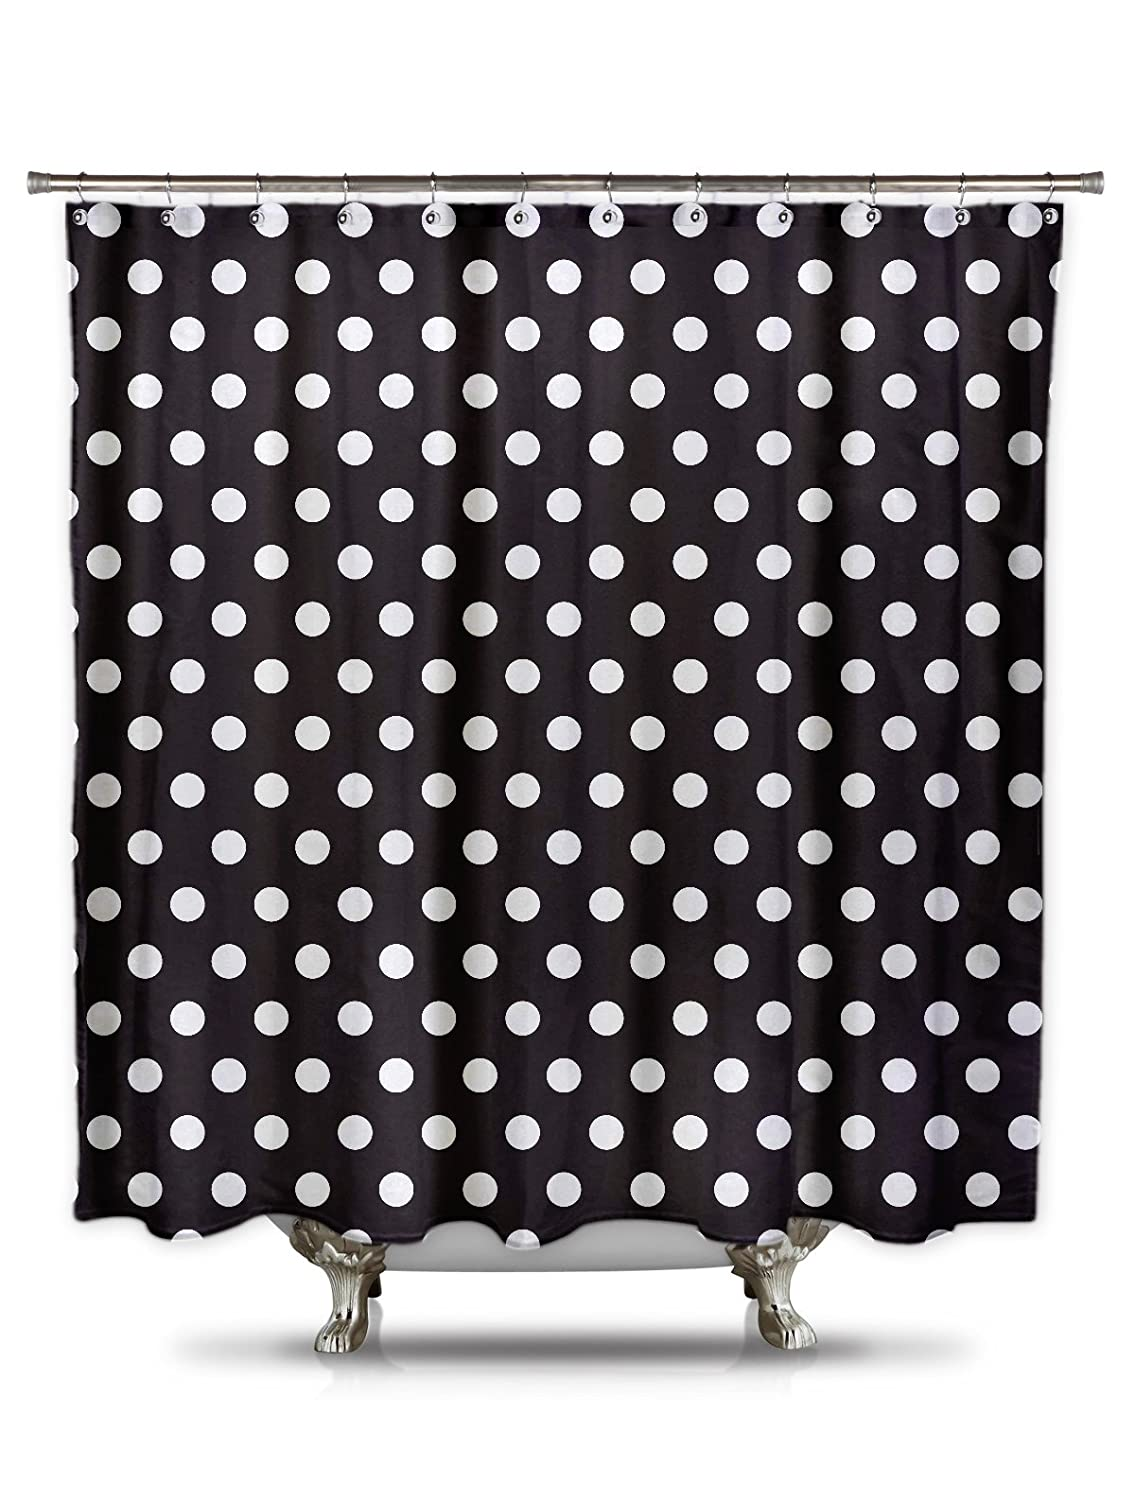 Polka dot shower curtain black and white - Amazon Com Shower Curtain Hq Black And White Polka Dot Shower Curtain 70in X 78in 100 Polyester Mildew And Wrinkle Resistant Bold Classic Pattern